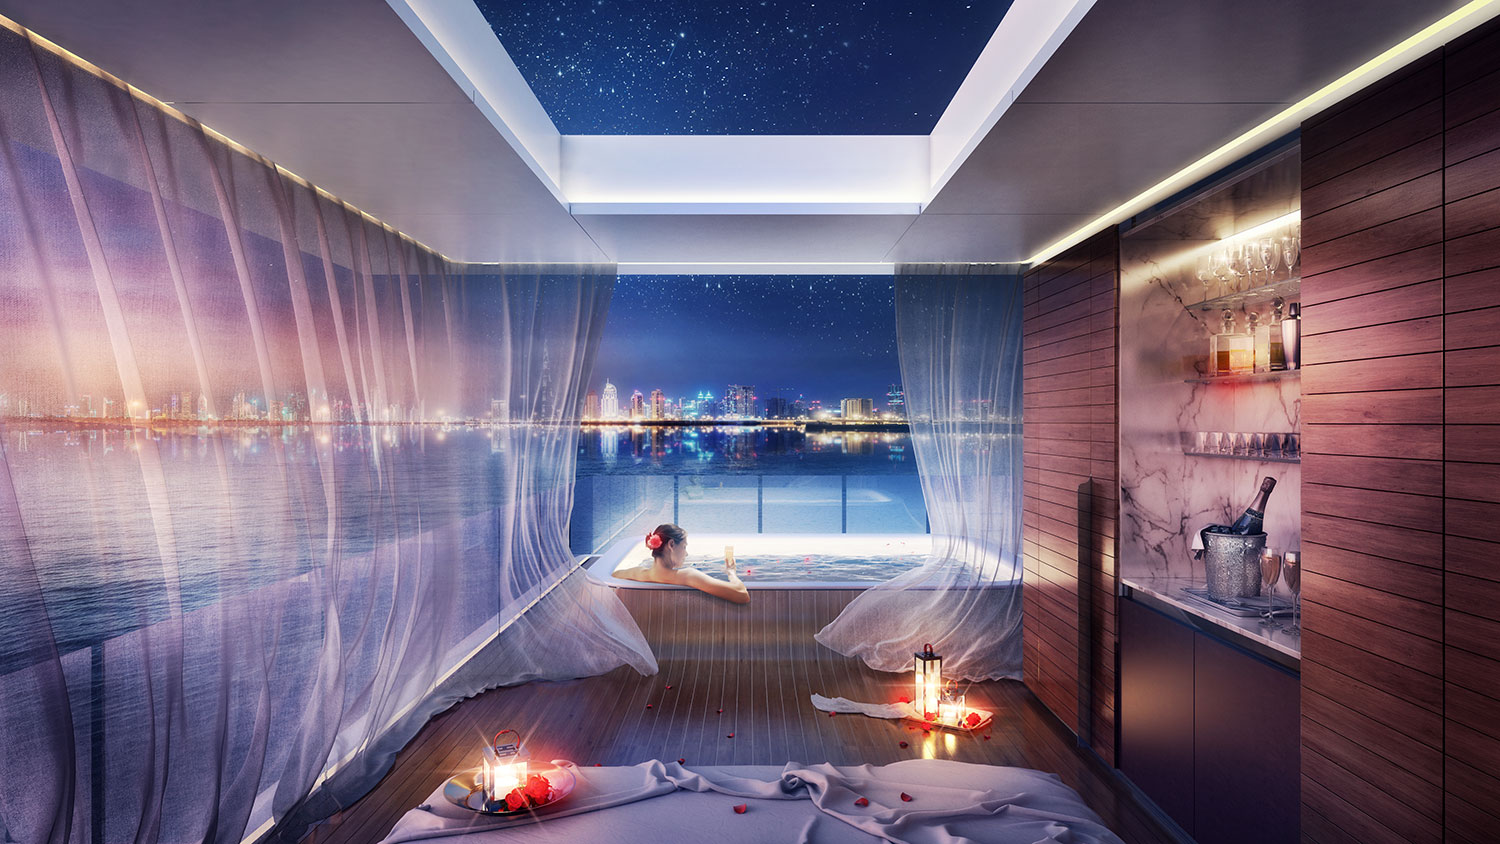 These Ultra Luxurious Floating Homes Look Incredible house3